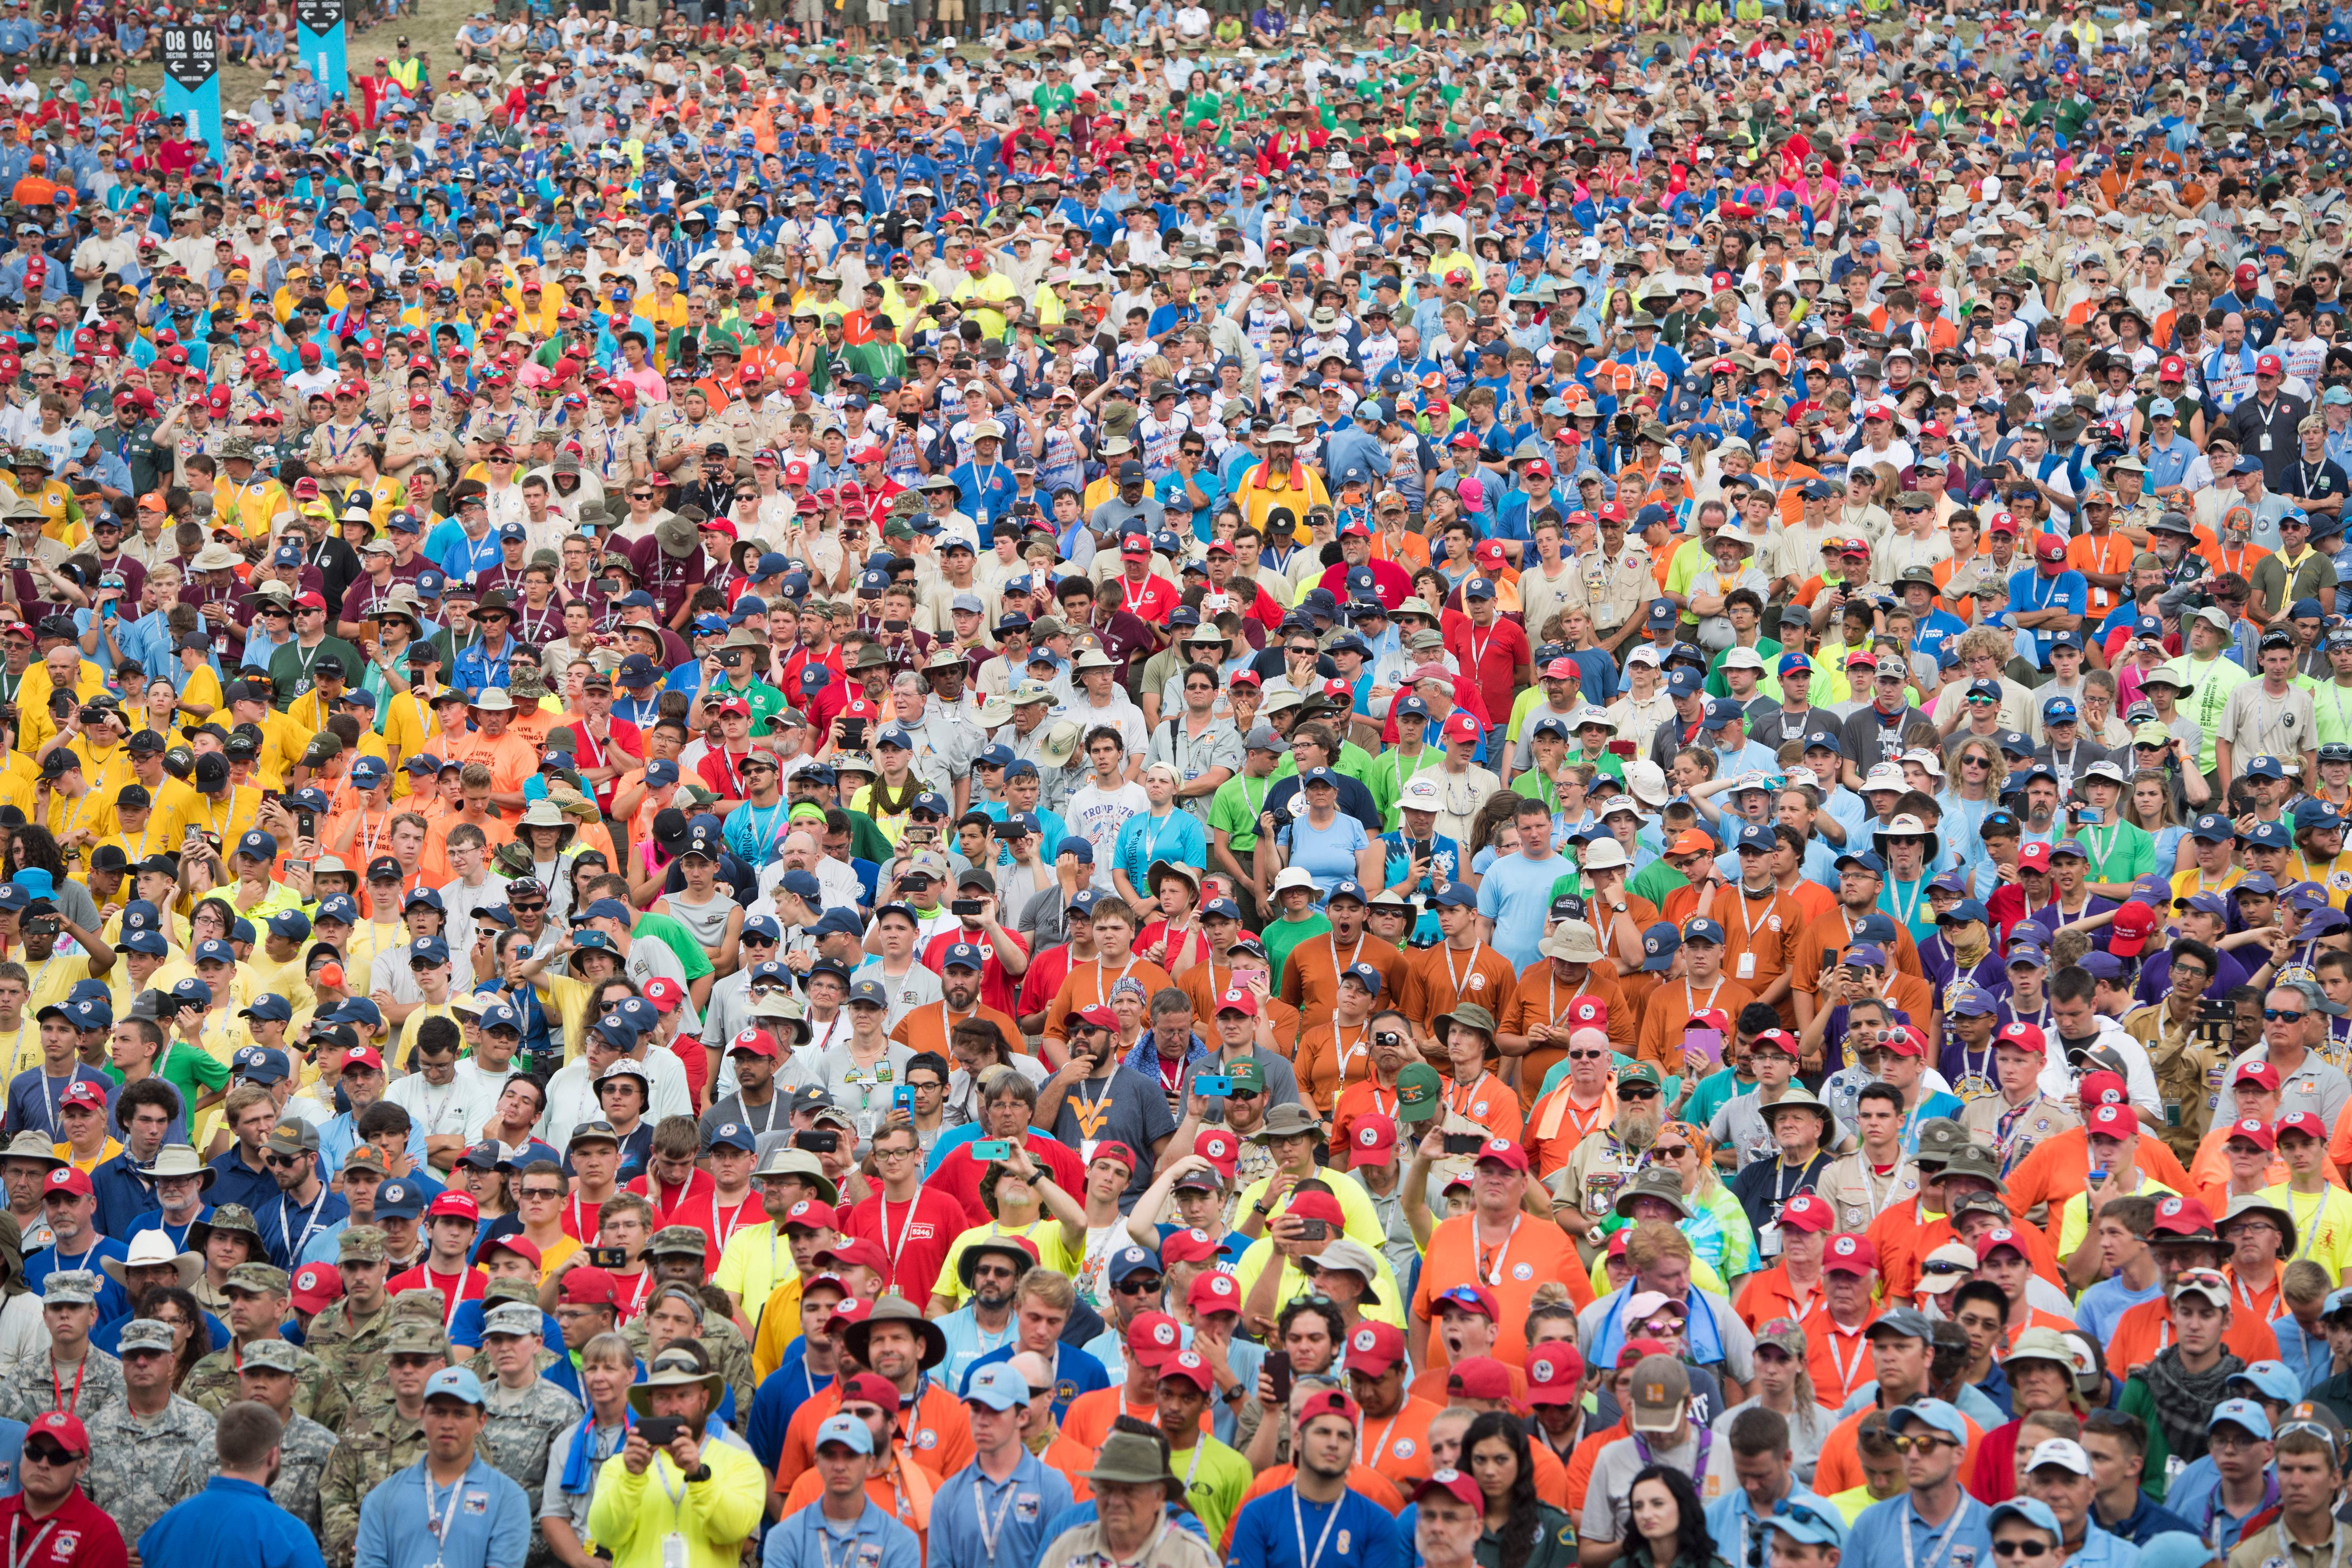 Boy Scouts listen as US President Donald Trump speaks during the National Boy Scout Jamboree at Summit Bechtel National Scout Reserve in Glen Jean, West Virginia, July 24, 2017.  (SAUL LOEB/AFP/Getty Images)